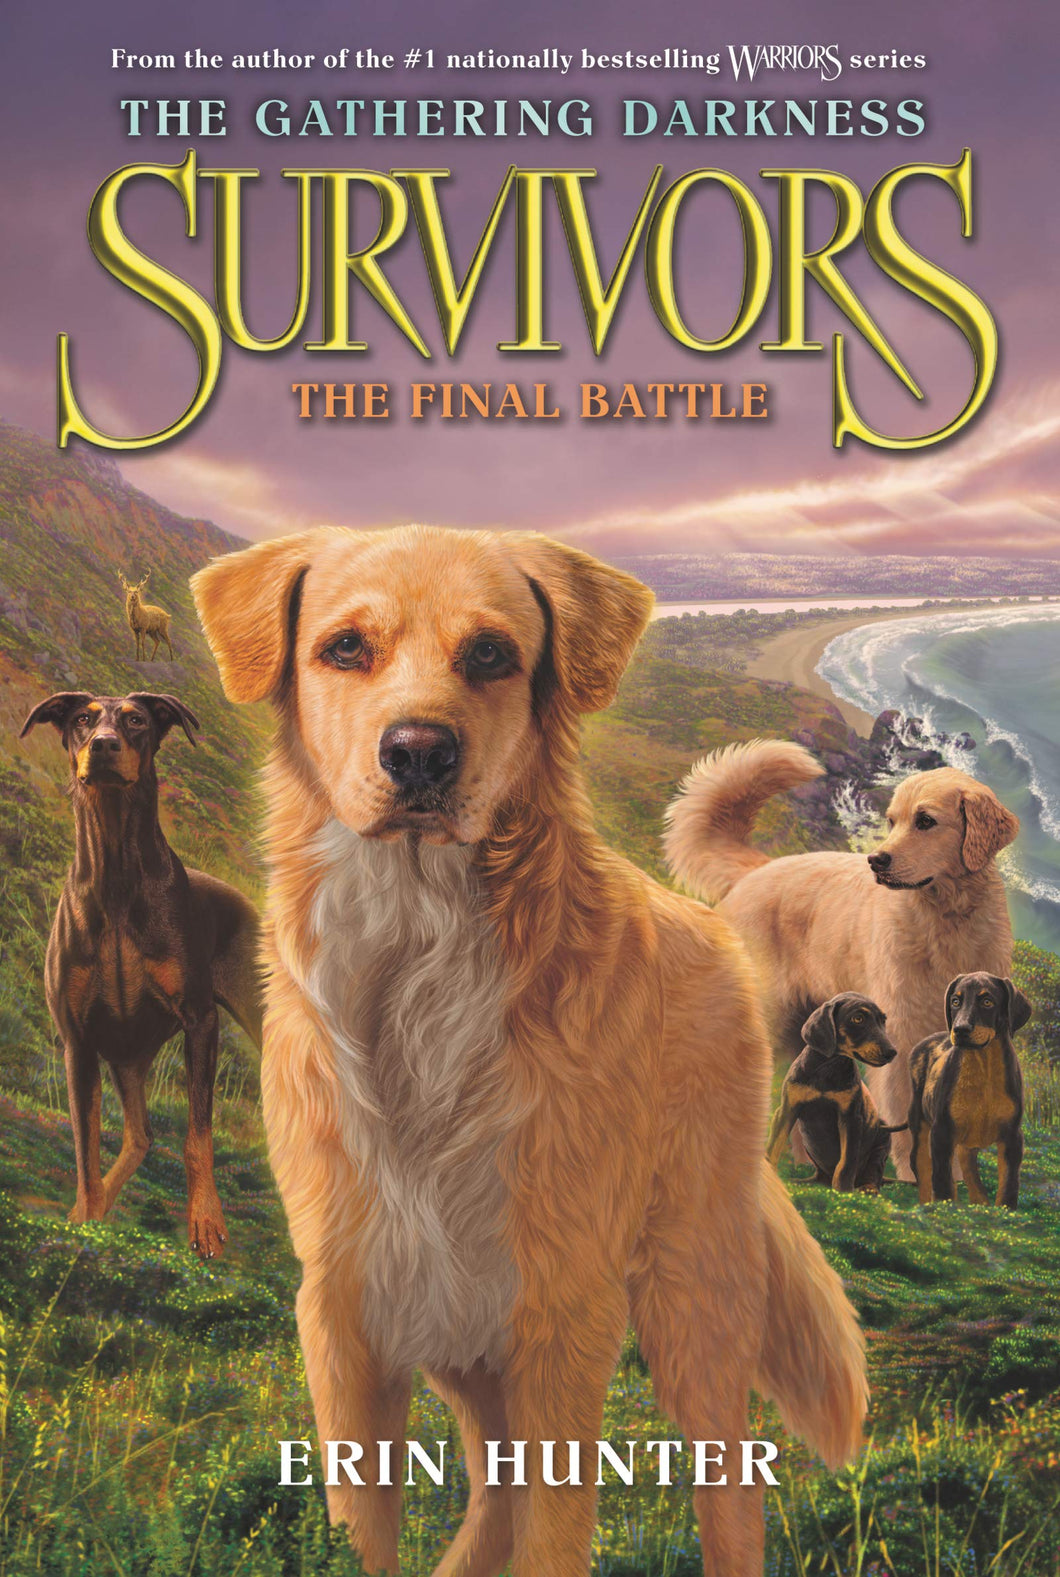 Survivors: The Gathering Darkness #6: The Final Battle